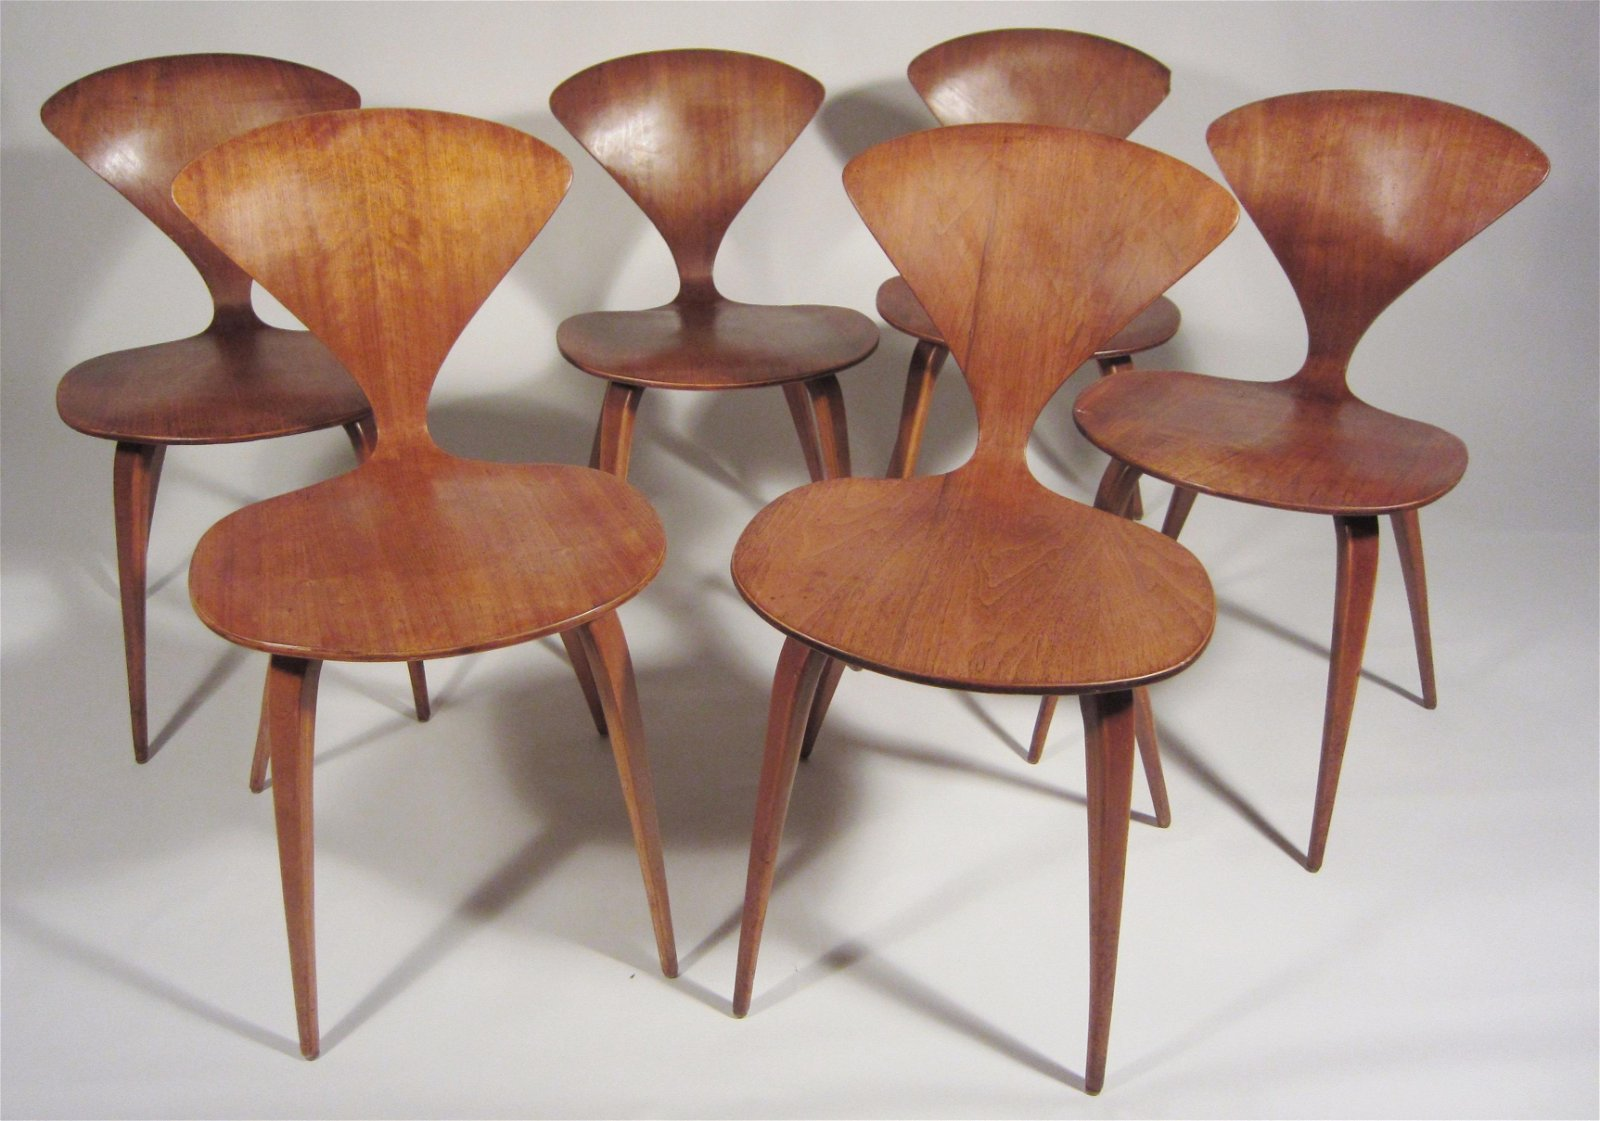 Set of 6 Norman Cherner chairs